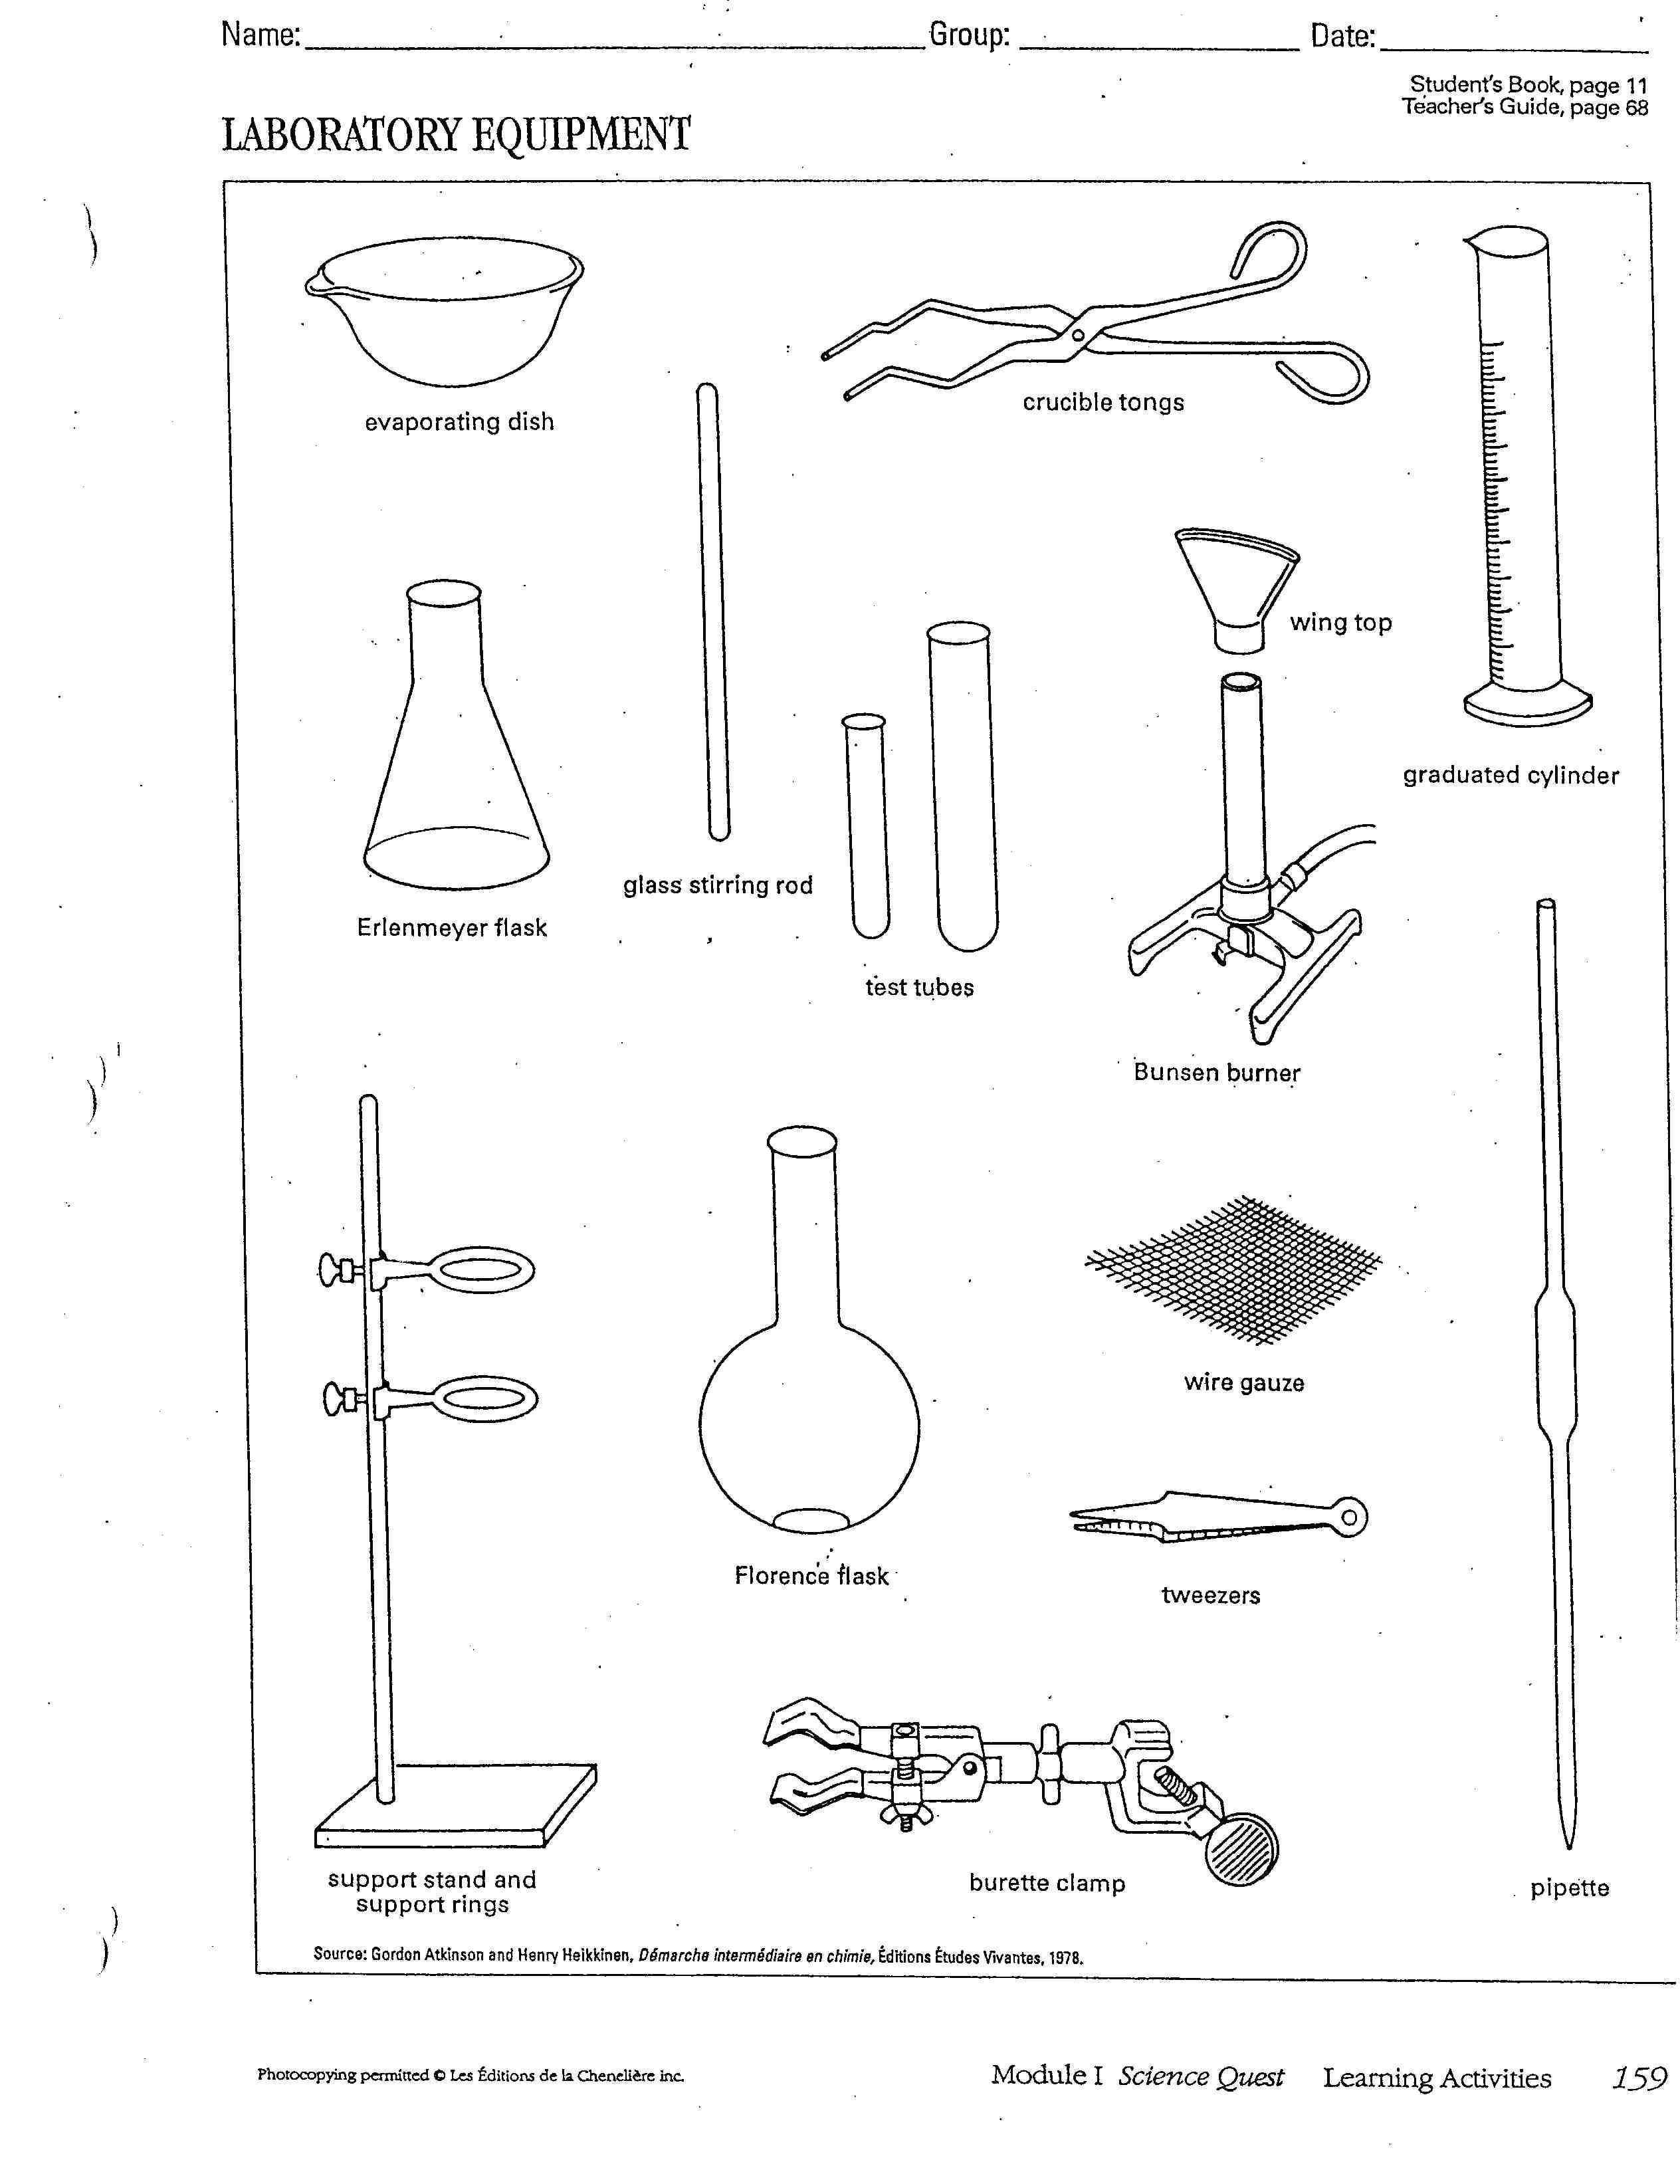 Worksheets Lab Equipment Worksheet chemistry lab equipment bing images pinterest images